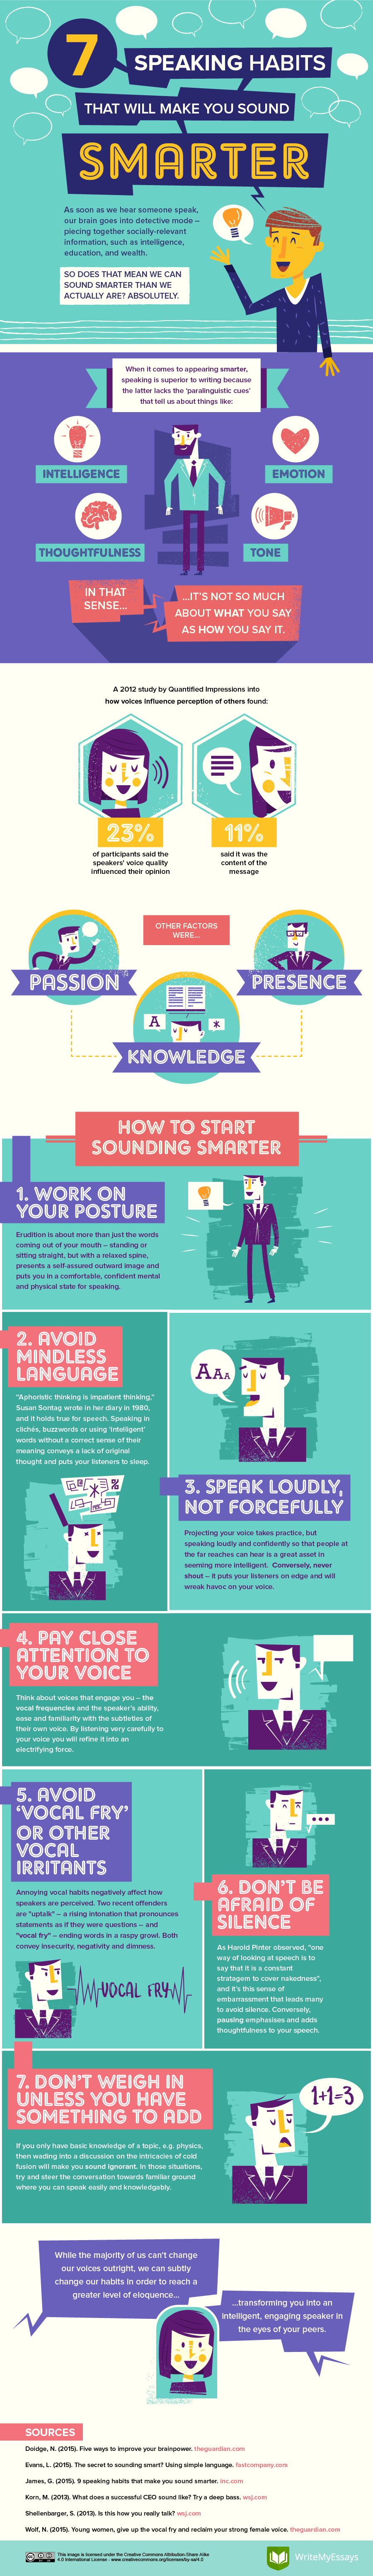 The Power of Speech: 7 Effective Speaking Habits That Always Win - Infographic